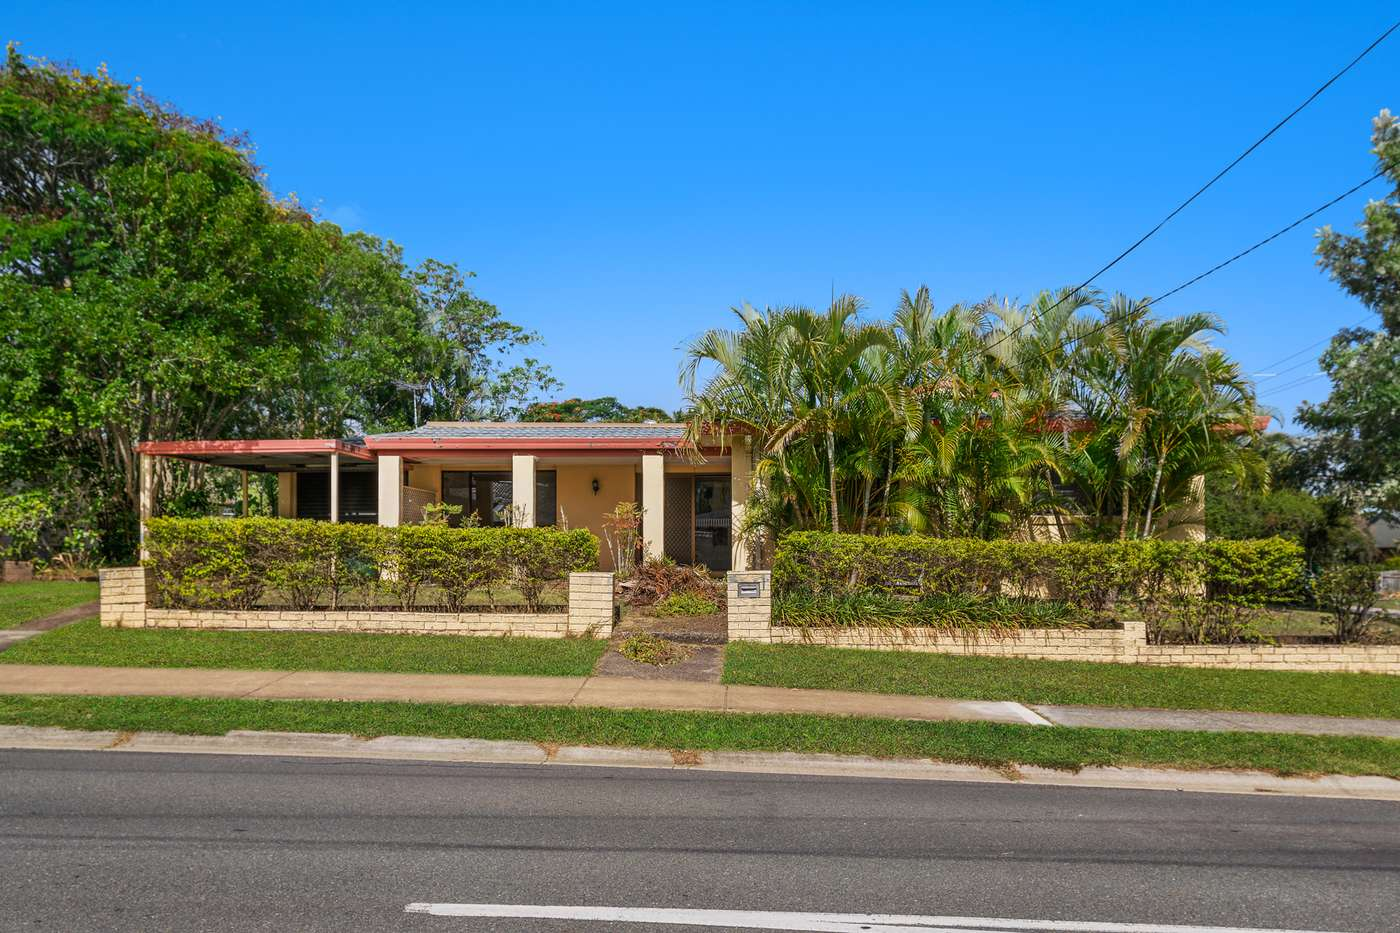 Main view of Homely house listing, 1 Celosia Street, Daisy Hill, QLD 4127